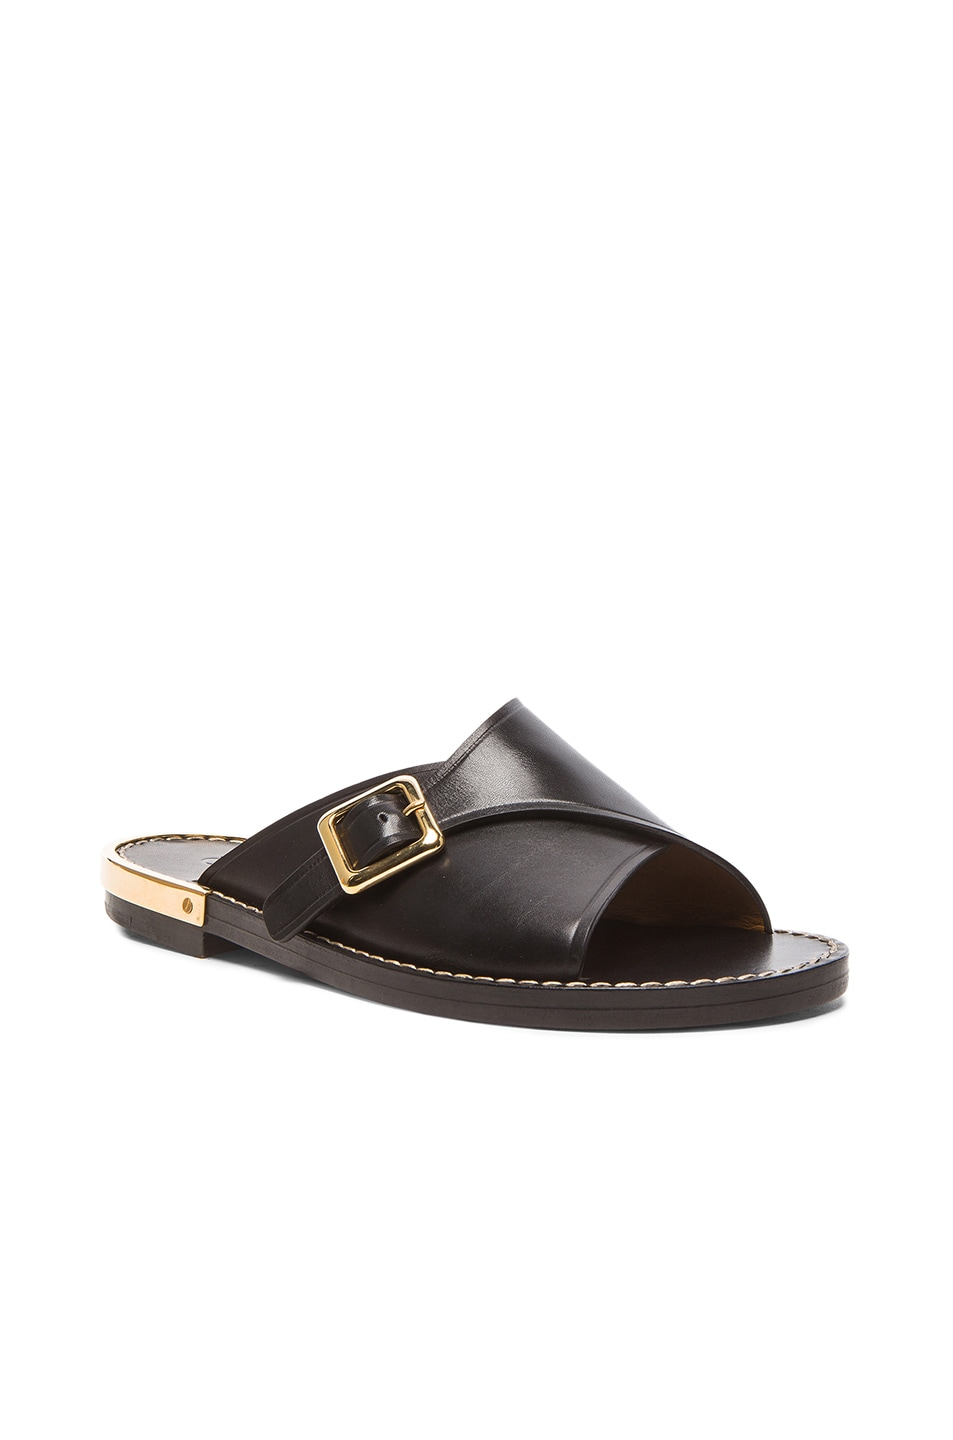 Image 2 of Chloe Leather Buckle Sandals in Black